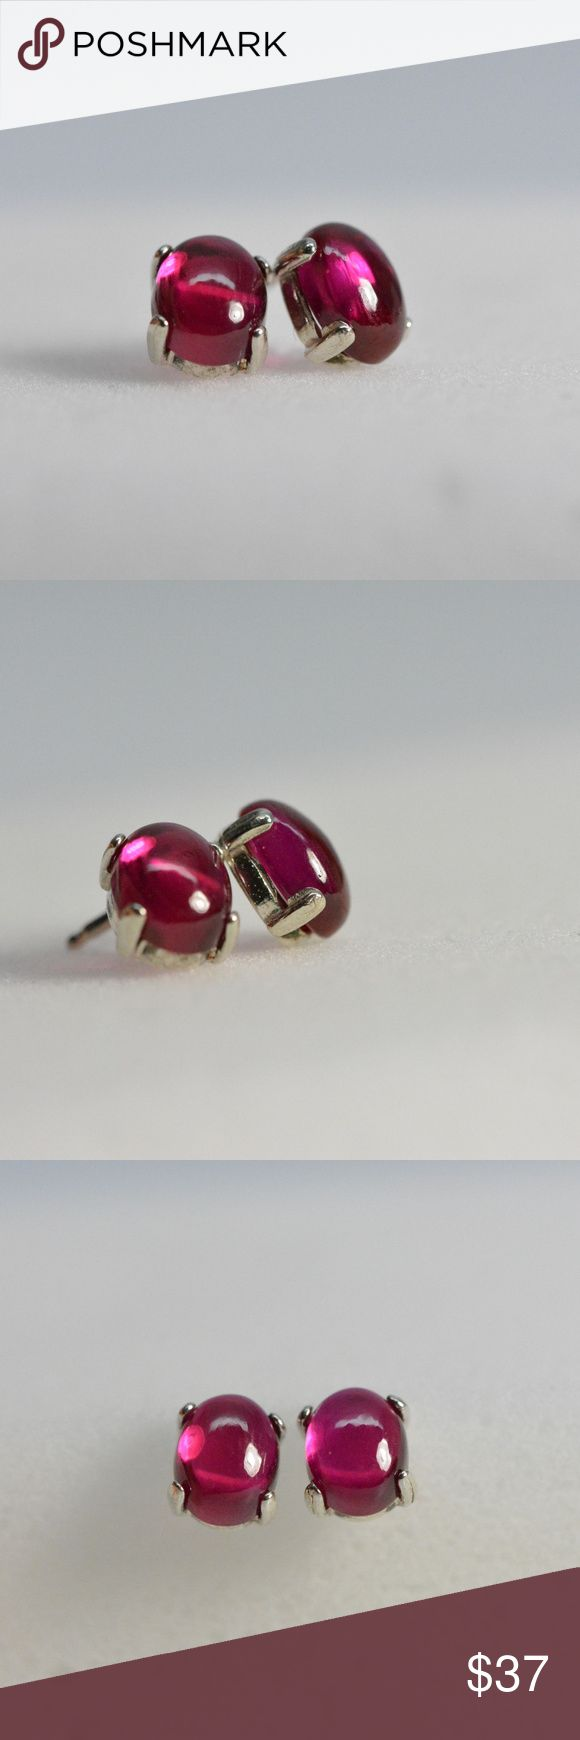 Ruby earrings stud - sterling silver Cabochon Stunning red/pink Ruby earring studs set in .925 sterling silver mountings. These Ruby gemstones are synthetic 7X5 cabochons and are absolutely stunning  stud earrings sterling silver Synthetic Ruby Gemstones 7X5 oval cabochon (lab created) Jewelry Earrings